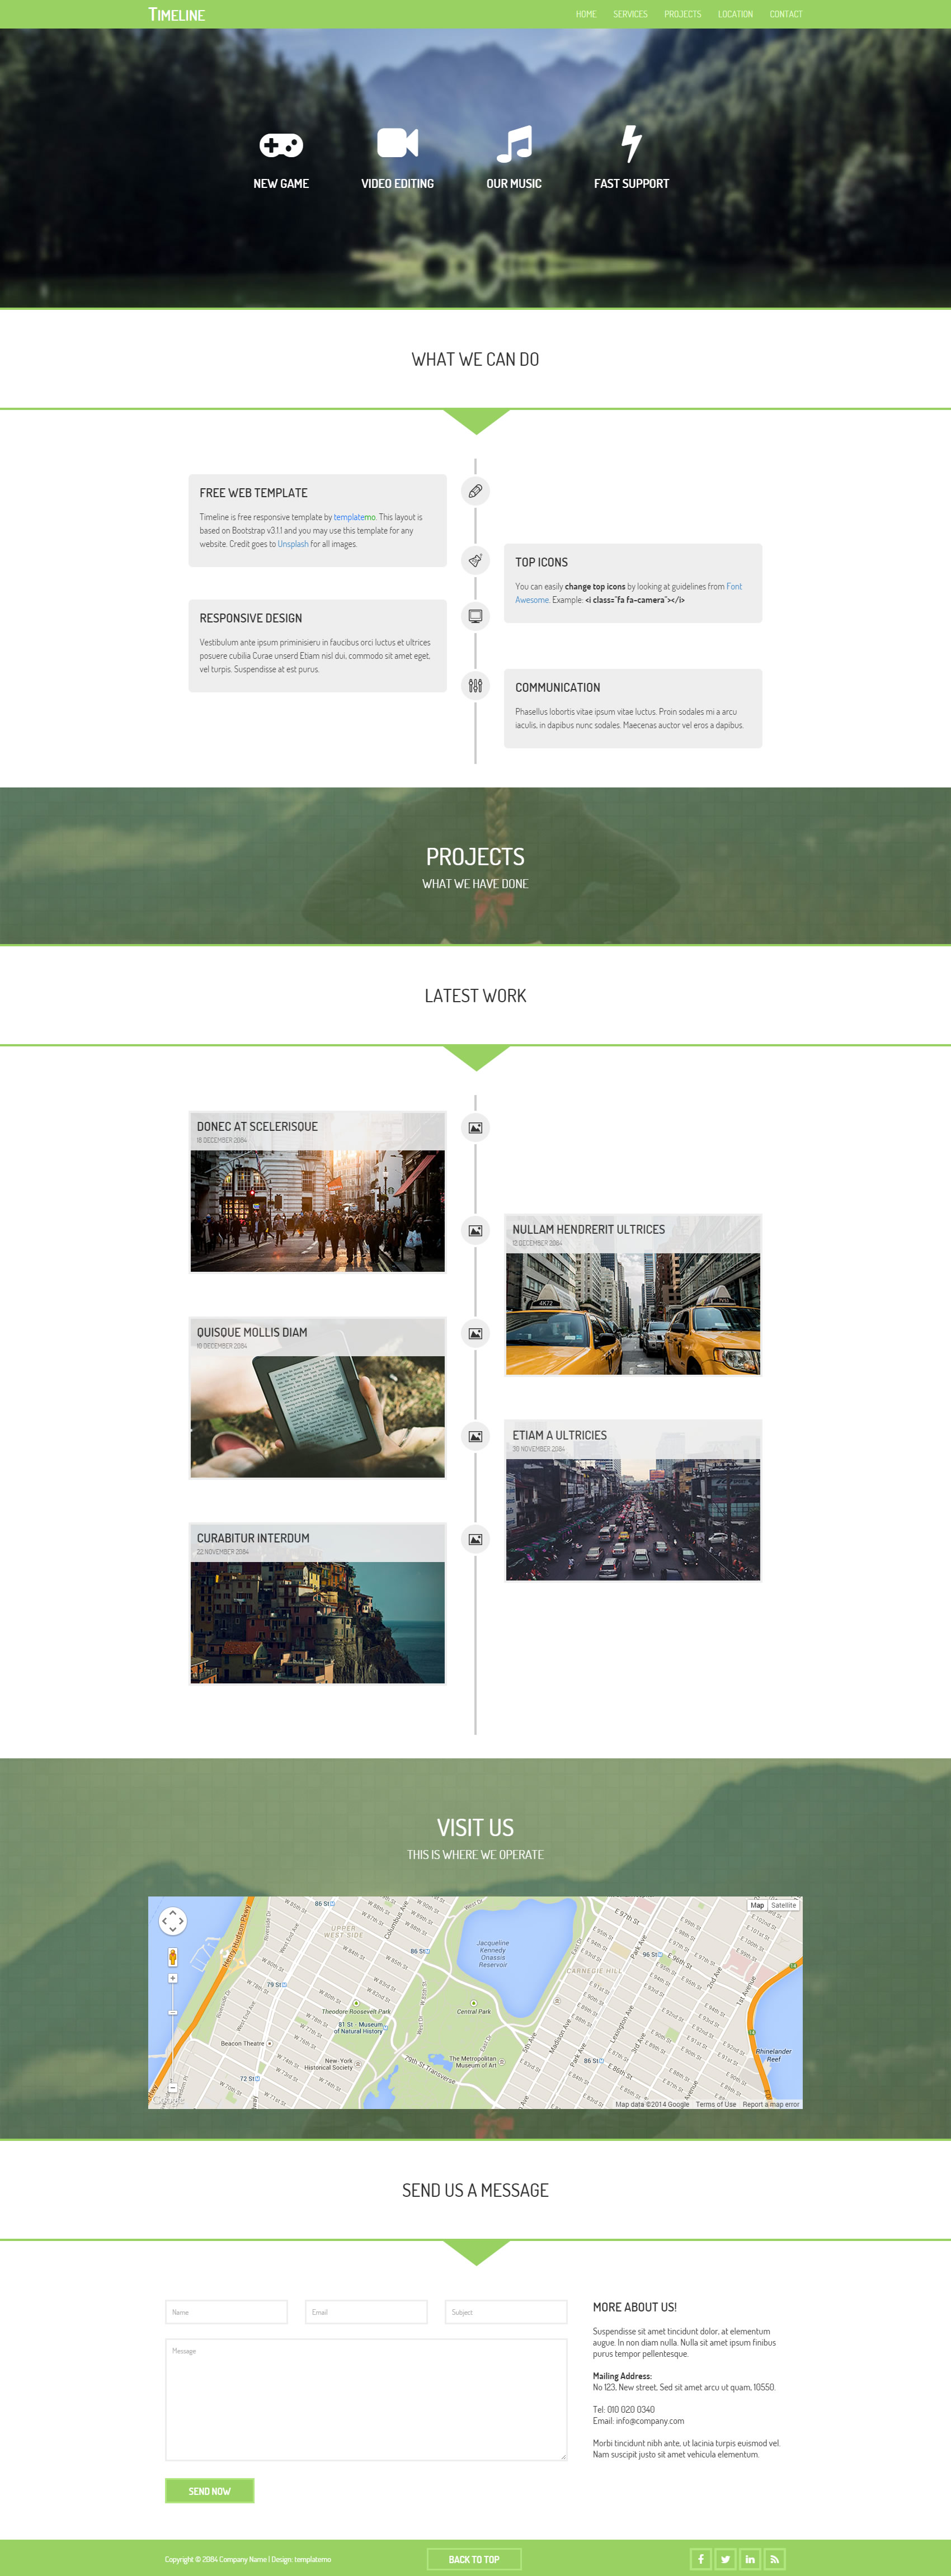 Timeline Template Free And Premium Website Templates Themes - Timeline website template